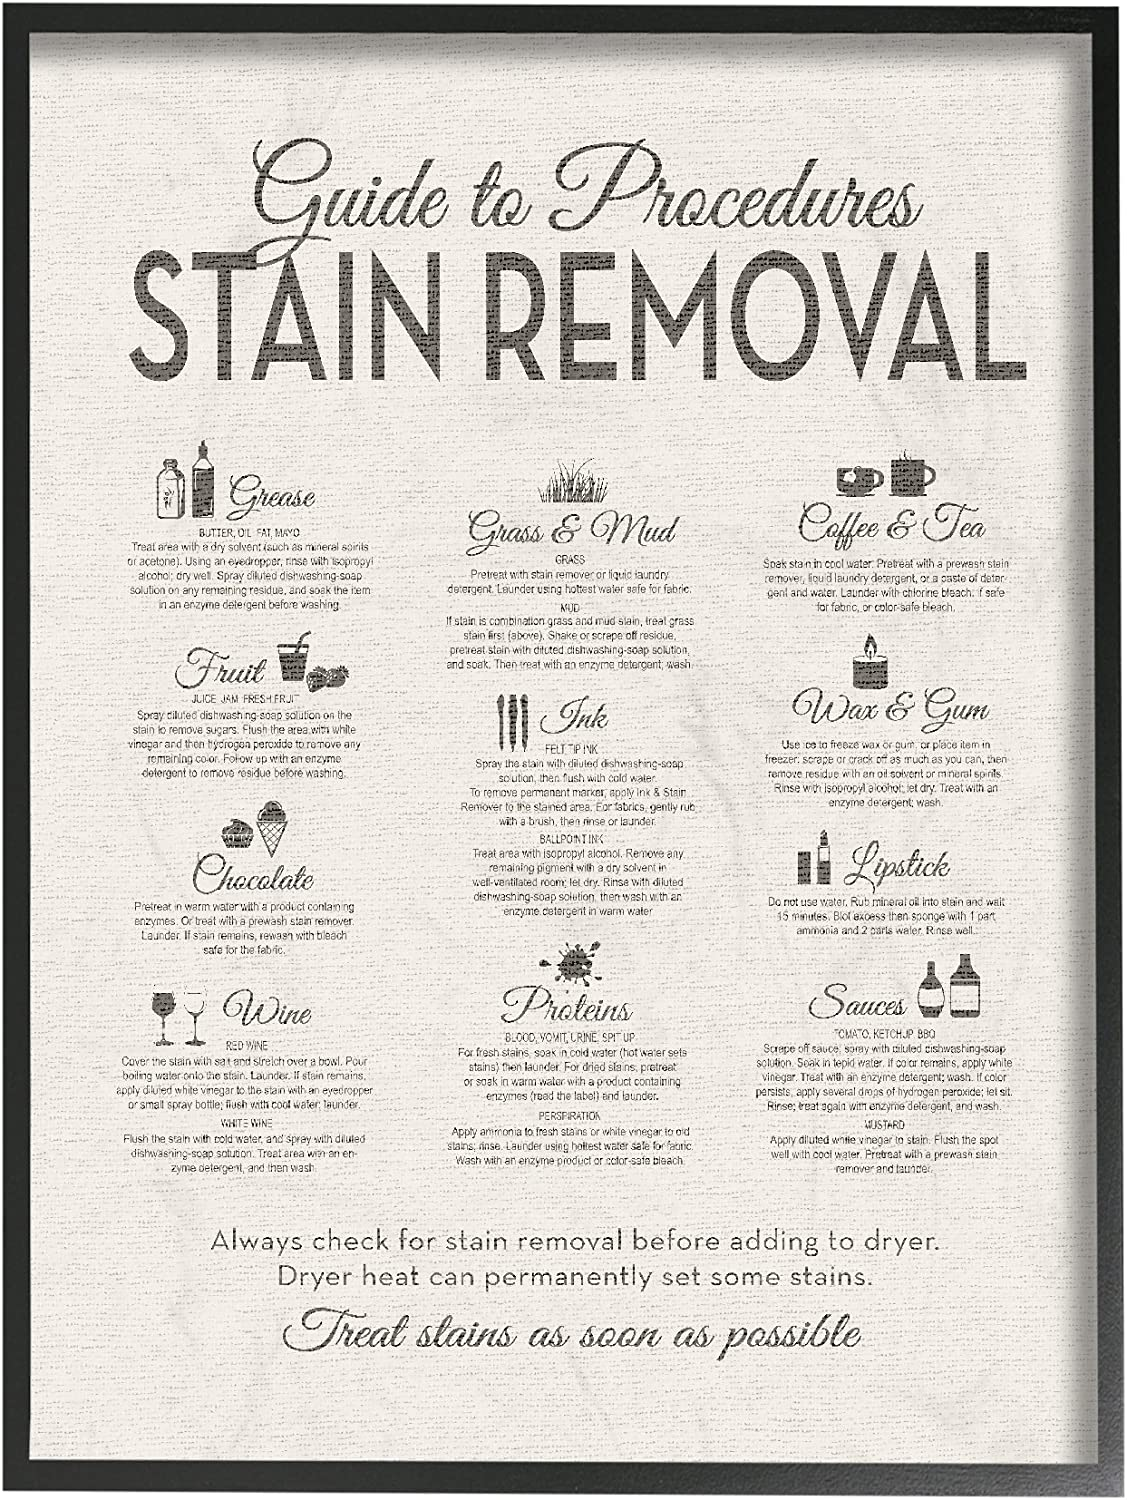 Stupell Industries Guide To Stain Removal Linen Look Oversized Framed Giclee Texturized Art, Proudly Made in USA